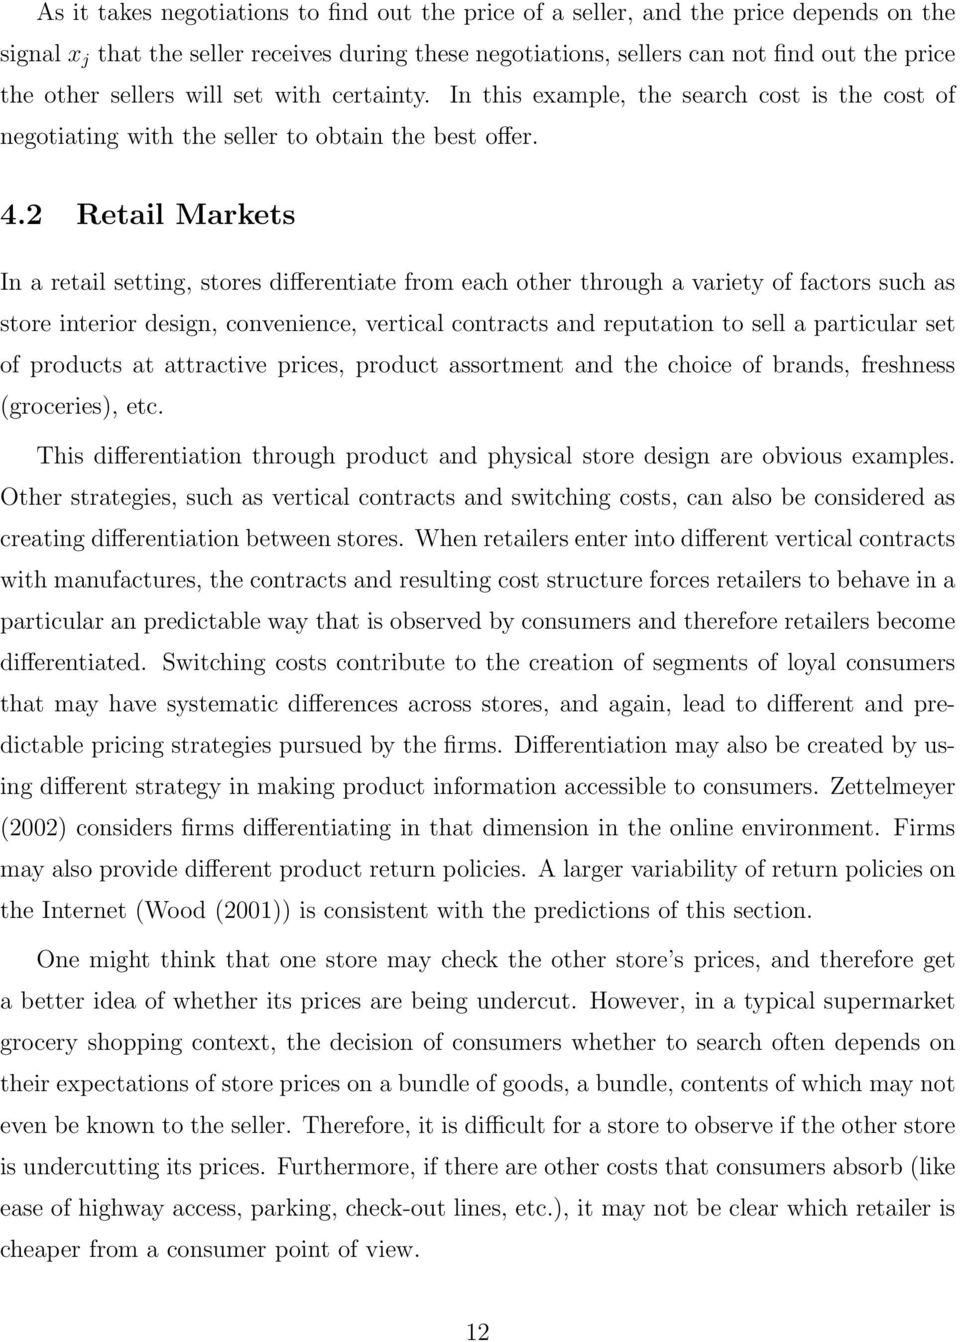 2 Retail Markets In a retail setting, stores differentiate from each other through a variety of factors such as store interior design, convenience, vertical contracts and reputation to sell a